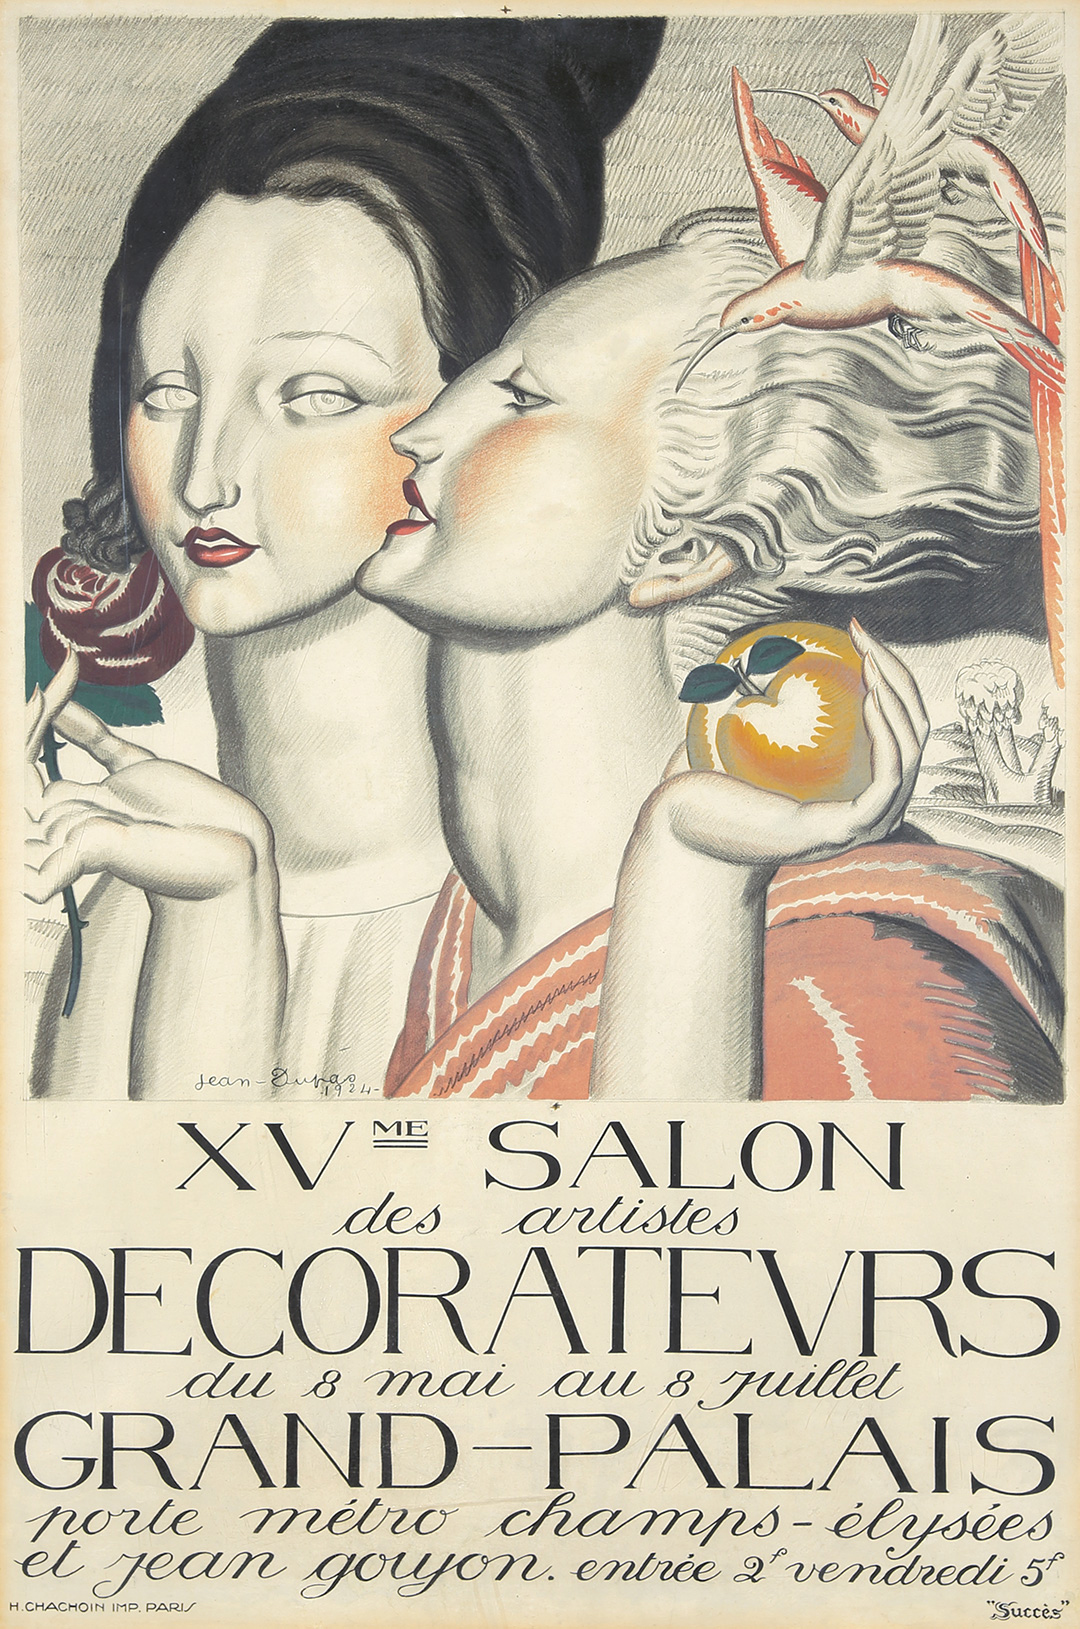 263. XVme Salon Des Artistes Decorateurs. 1924. ($12,000)